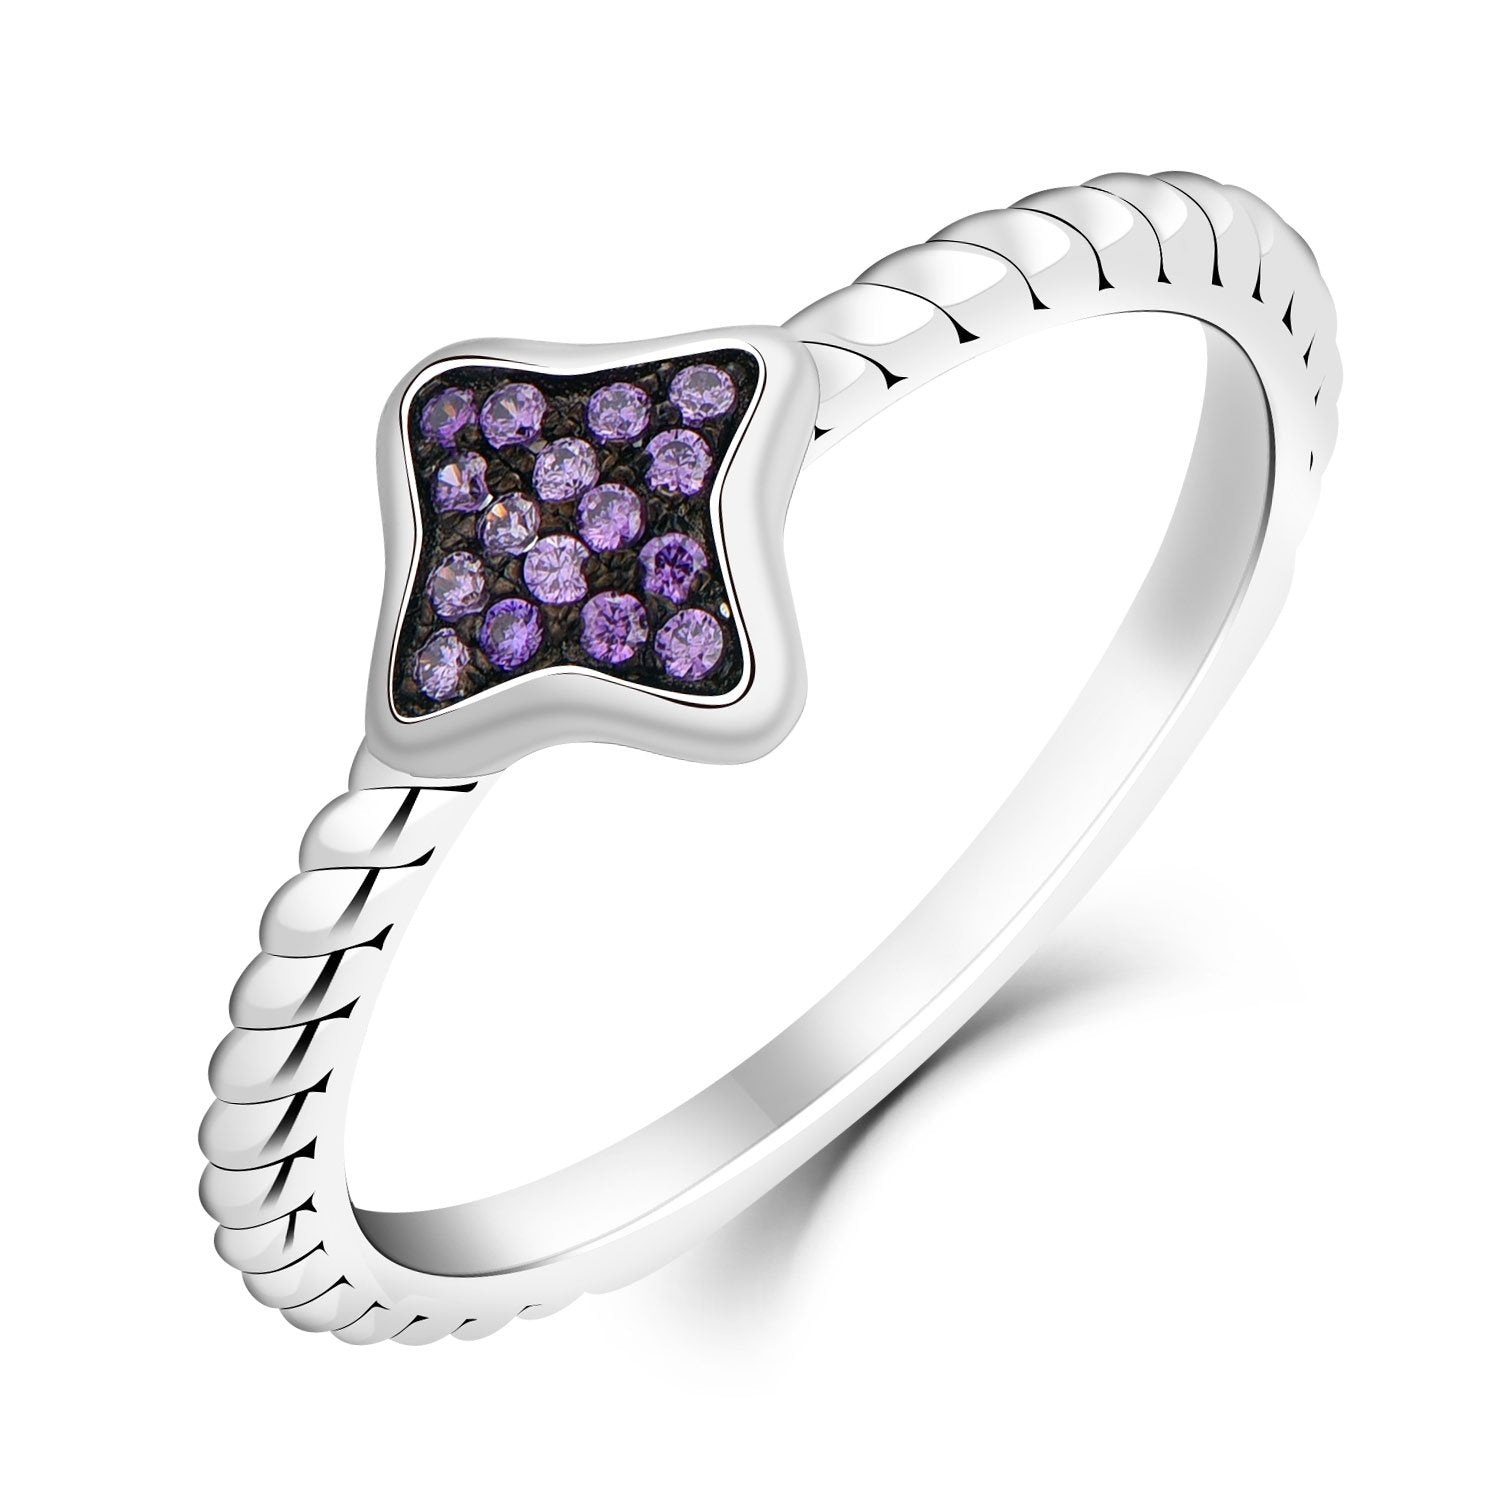 Farjary 9K White Gold Amethyst Diamond Ring